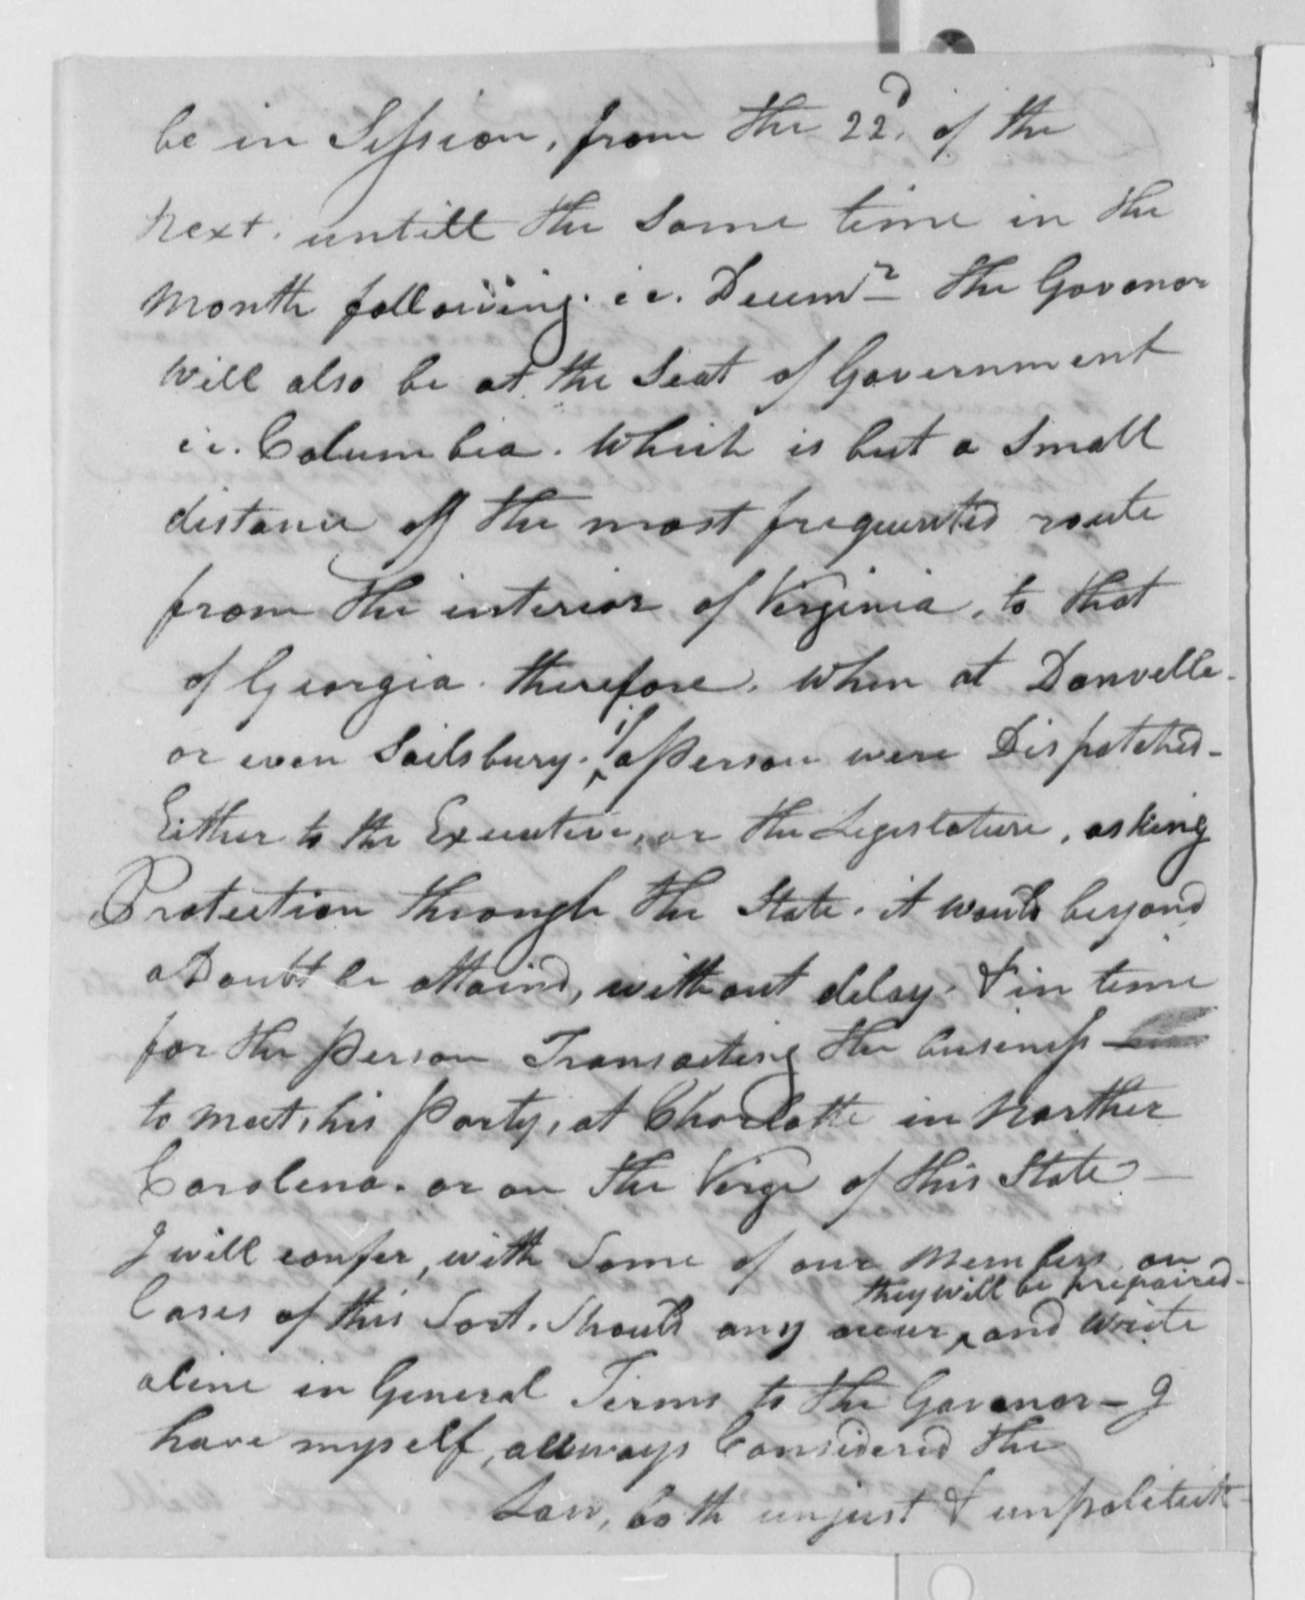 Thomas Sumter to Thomas Jefferson, October 31, 1802